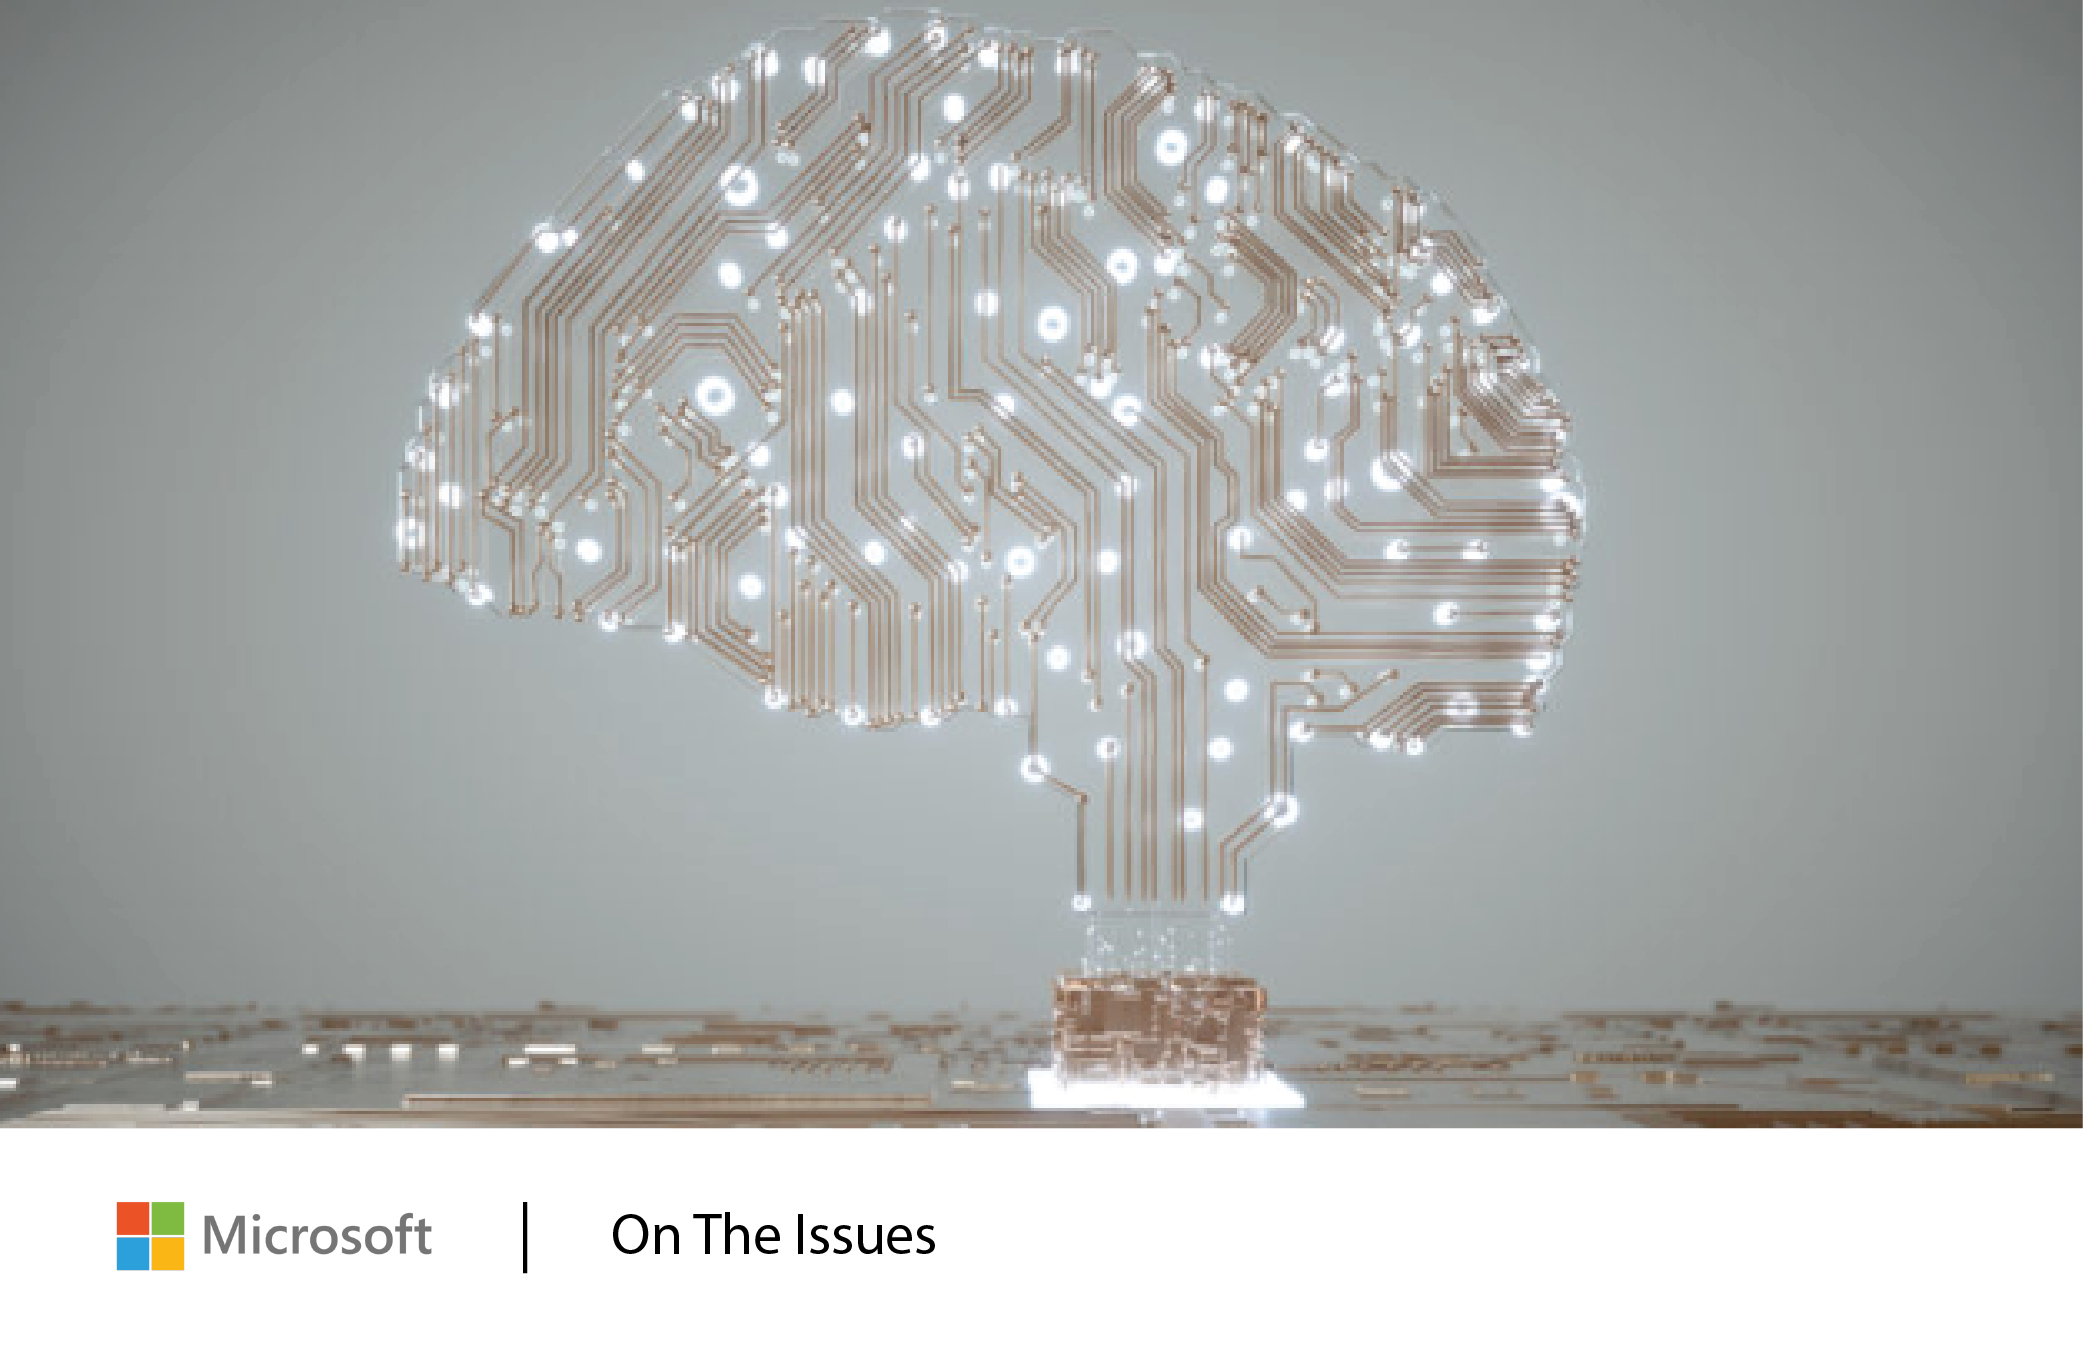 Stylized image of brain-shaped circuitry: Get the latest from Microsoft on the most pressing policy issues